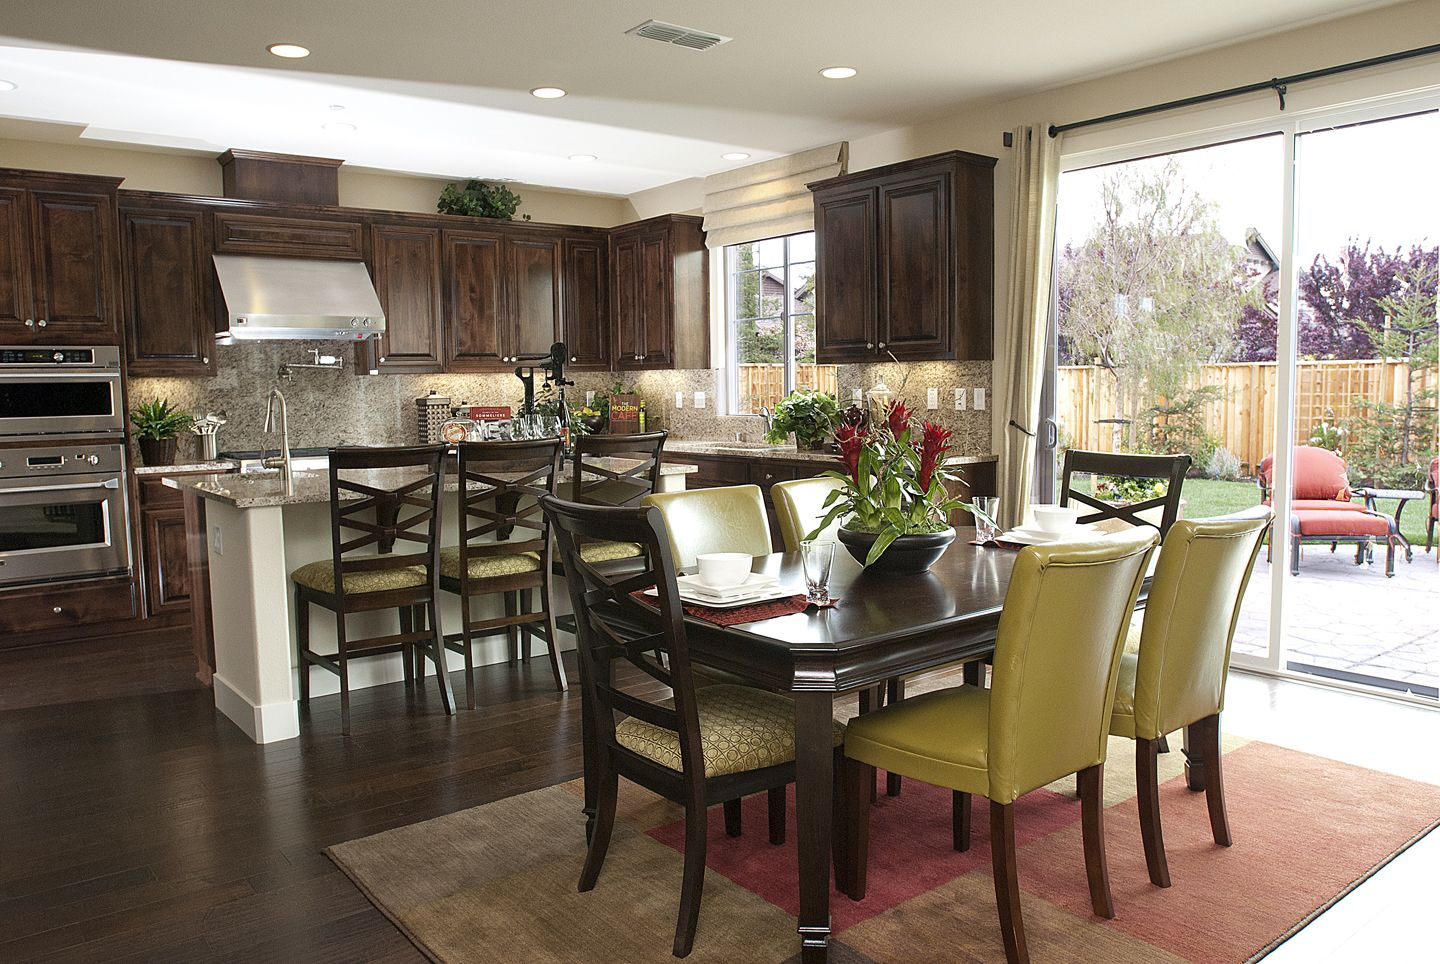 Room Decoration And Kitchen | Kitchen Room With Dining Room ...